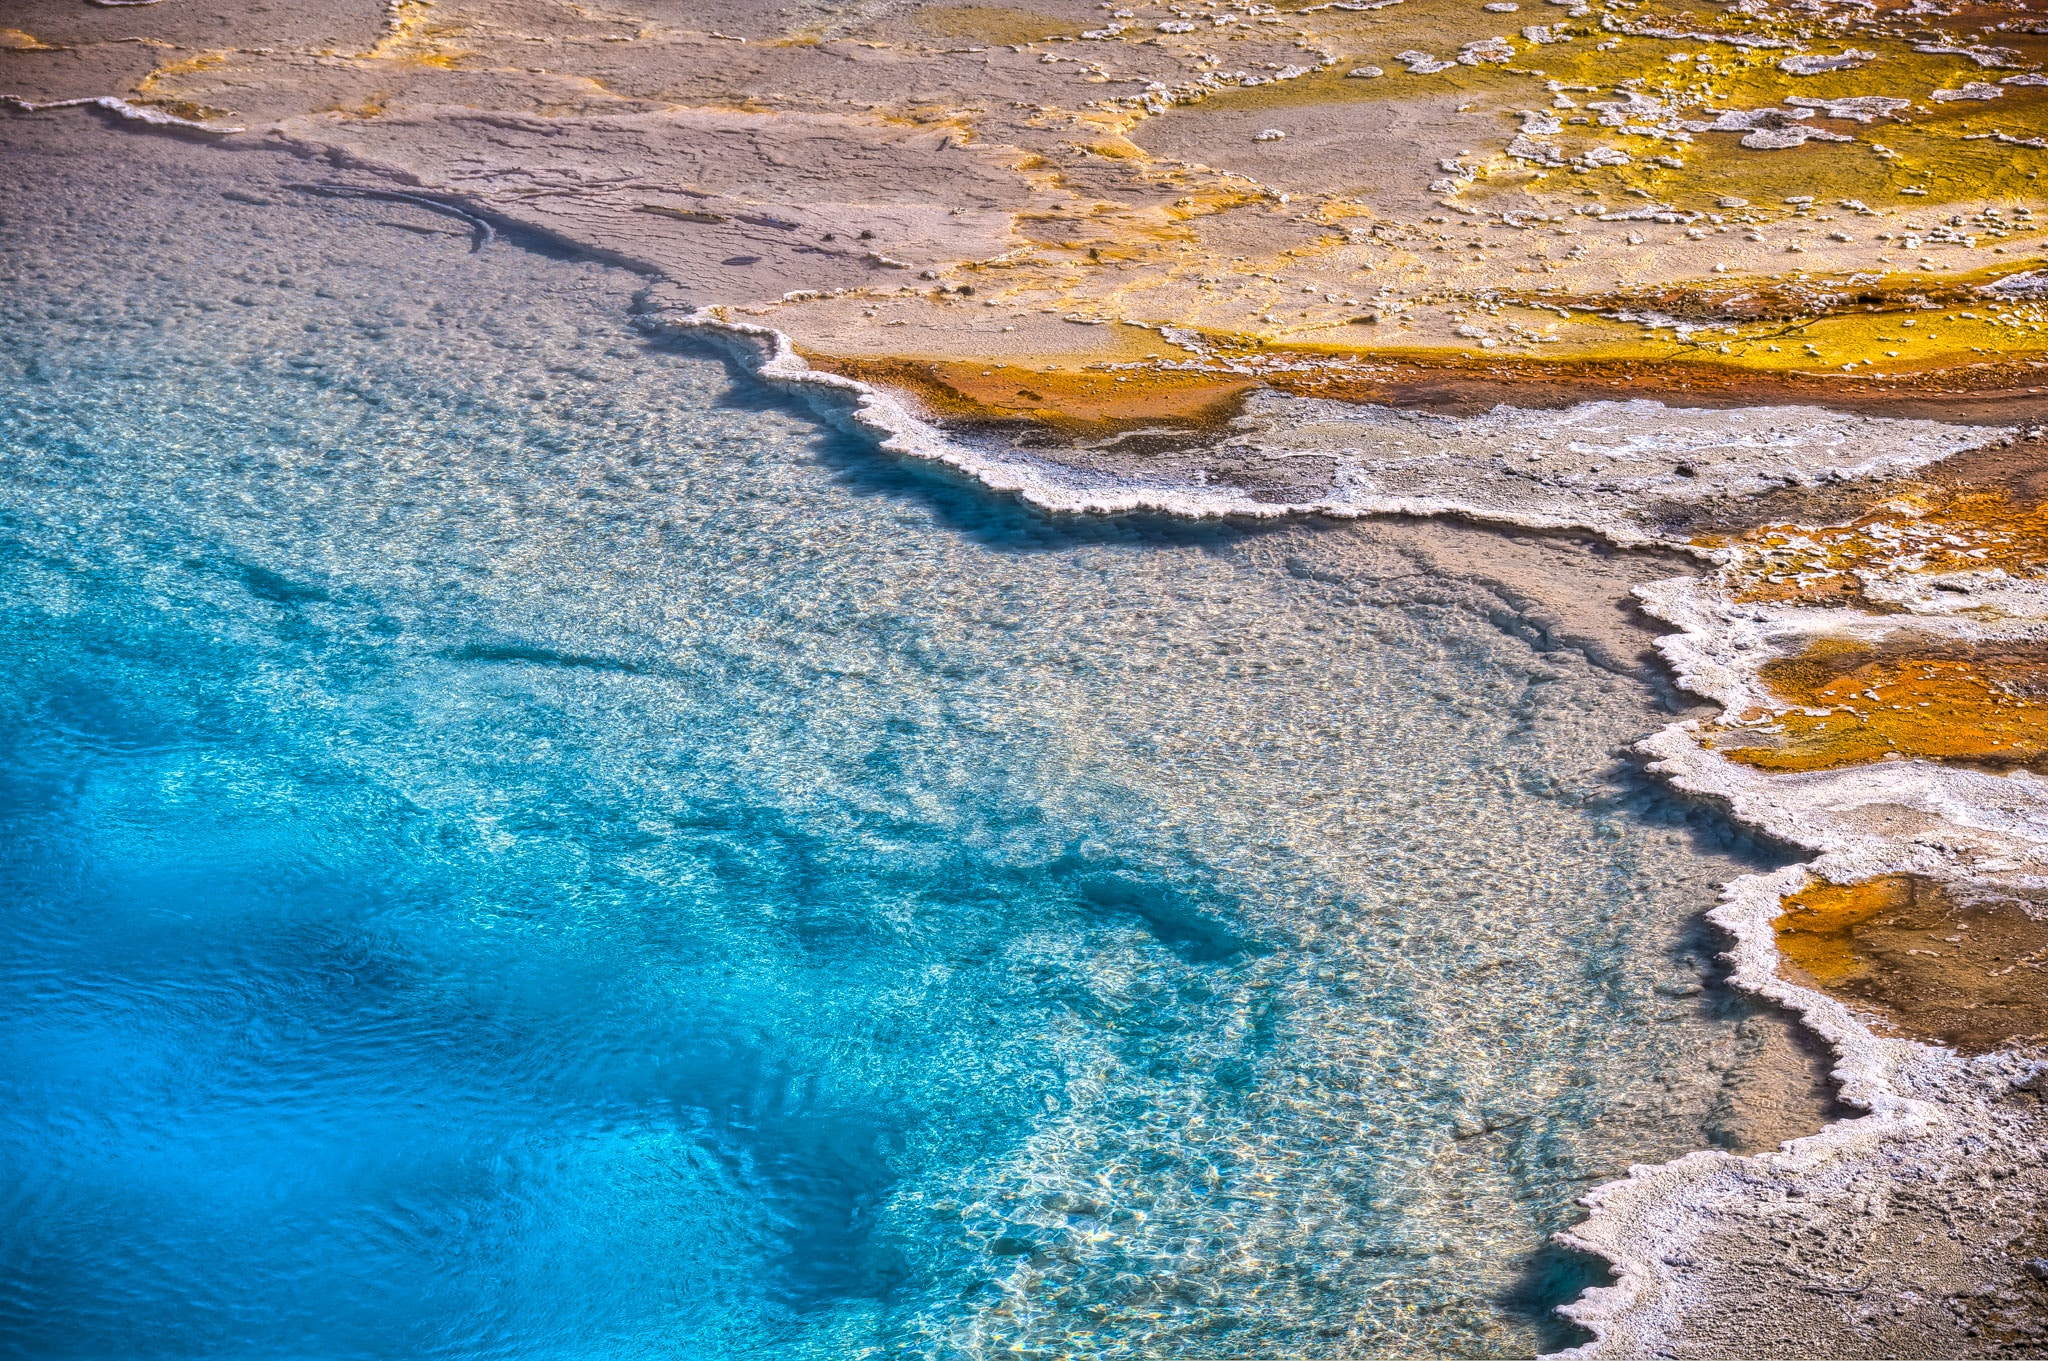 Detail of a hot spring in the Biscuit Basin area of Yellowstone National Park, Wyoming